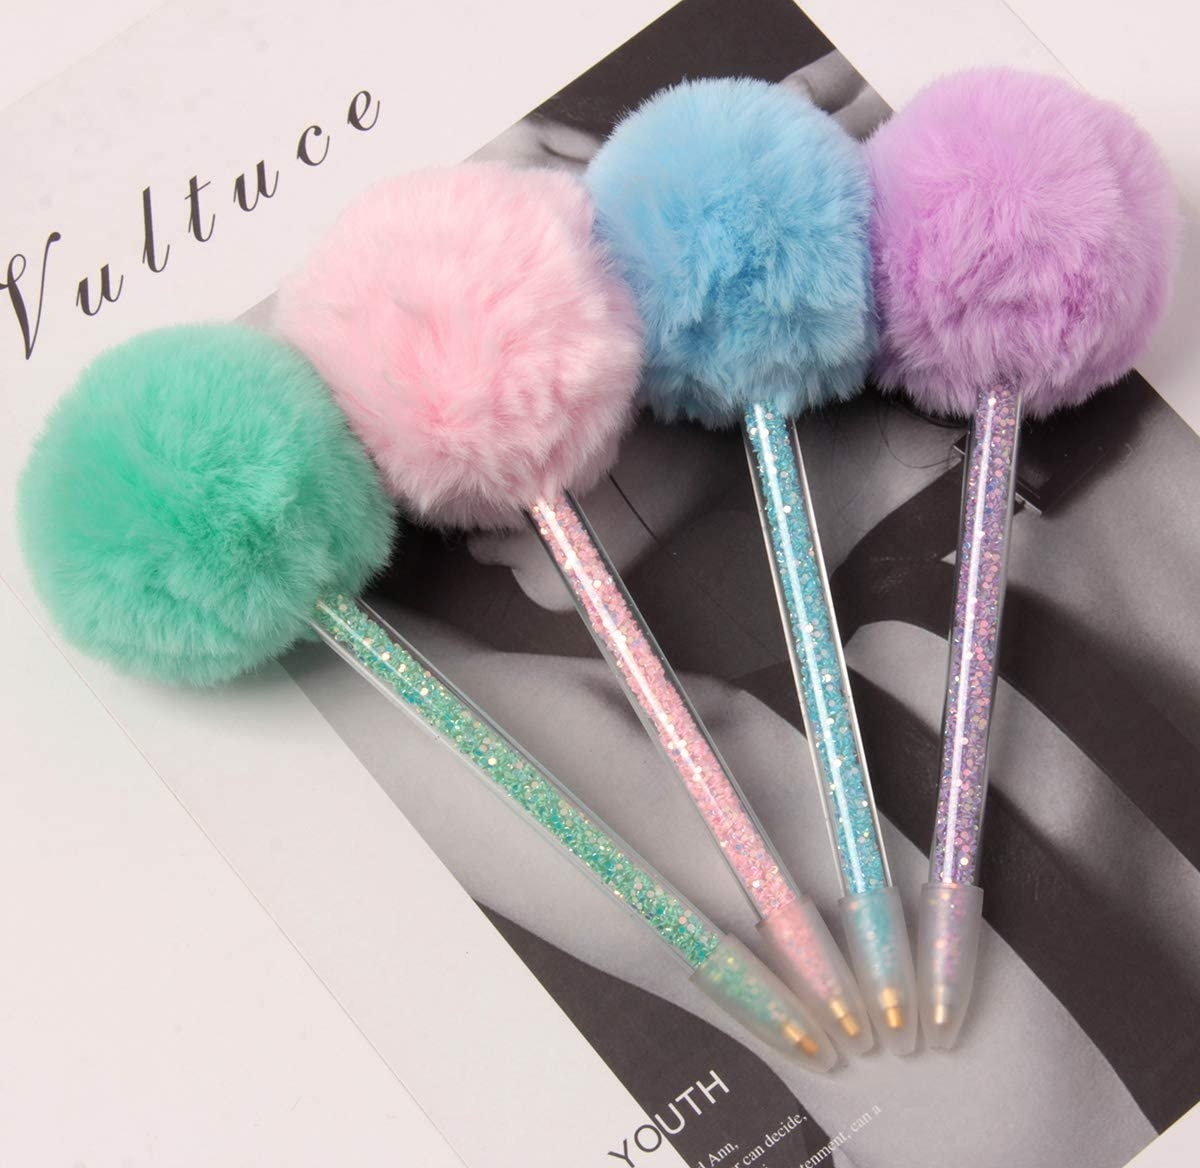 The pens in green, pink, blue, and purple with beads in the pens and a faux fur puff ball on top of each